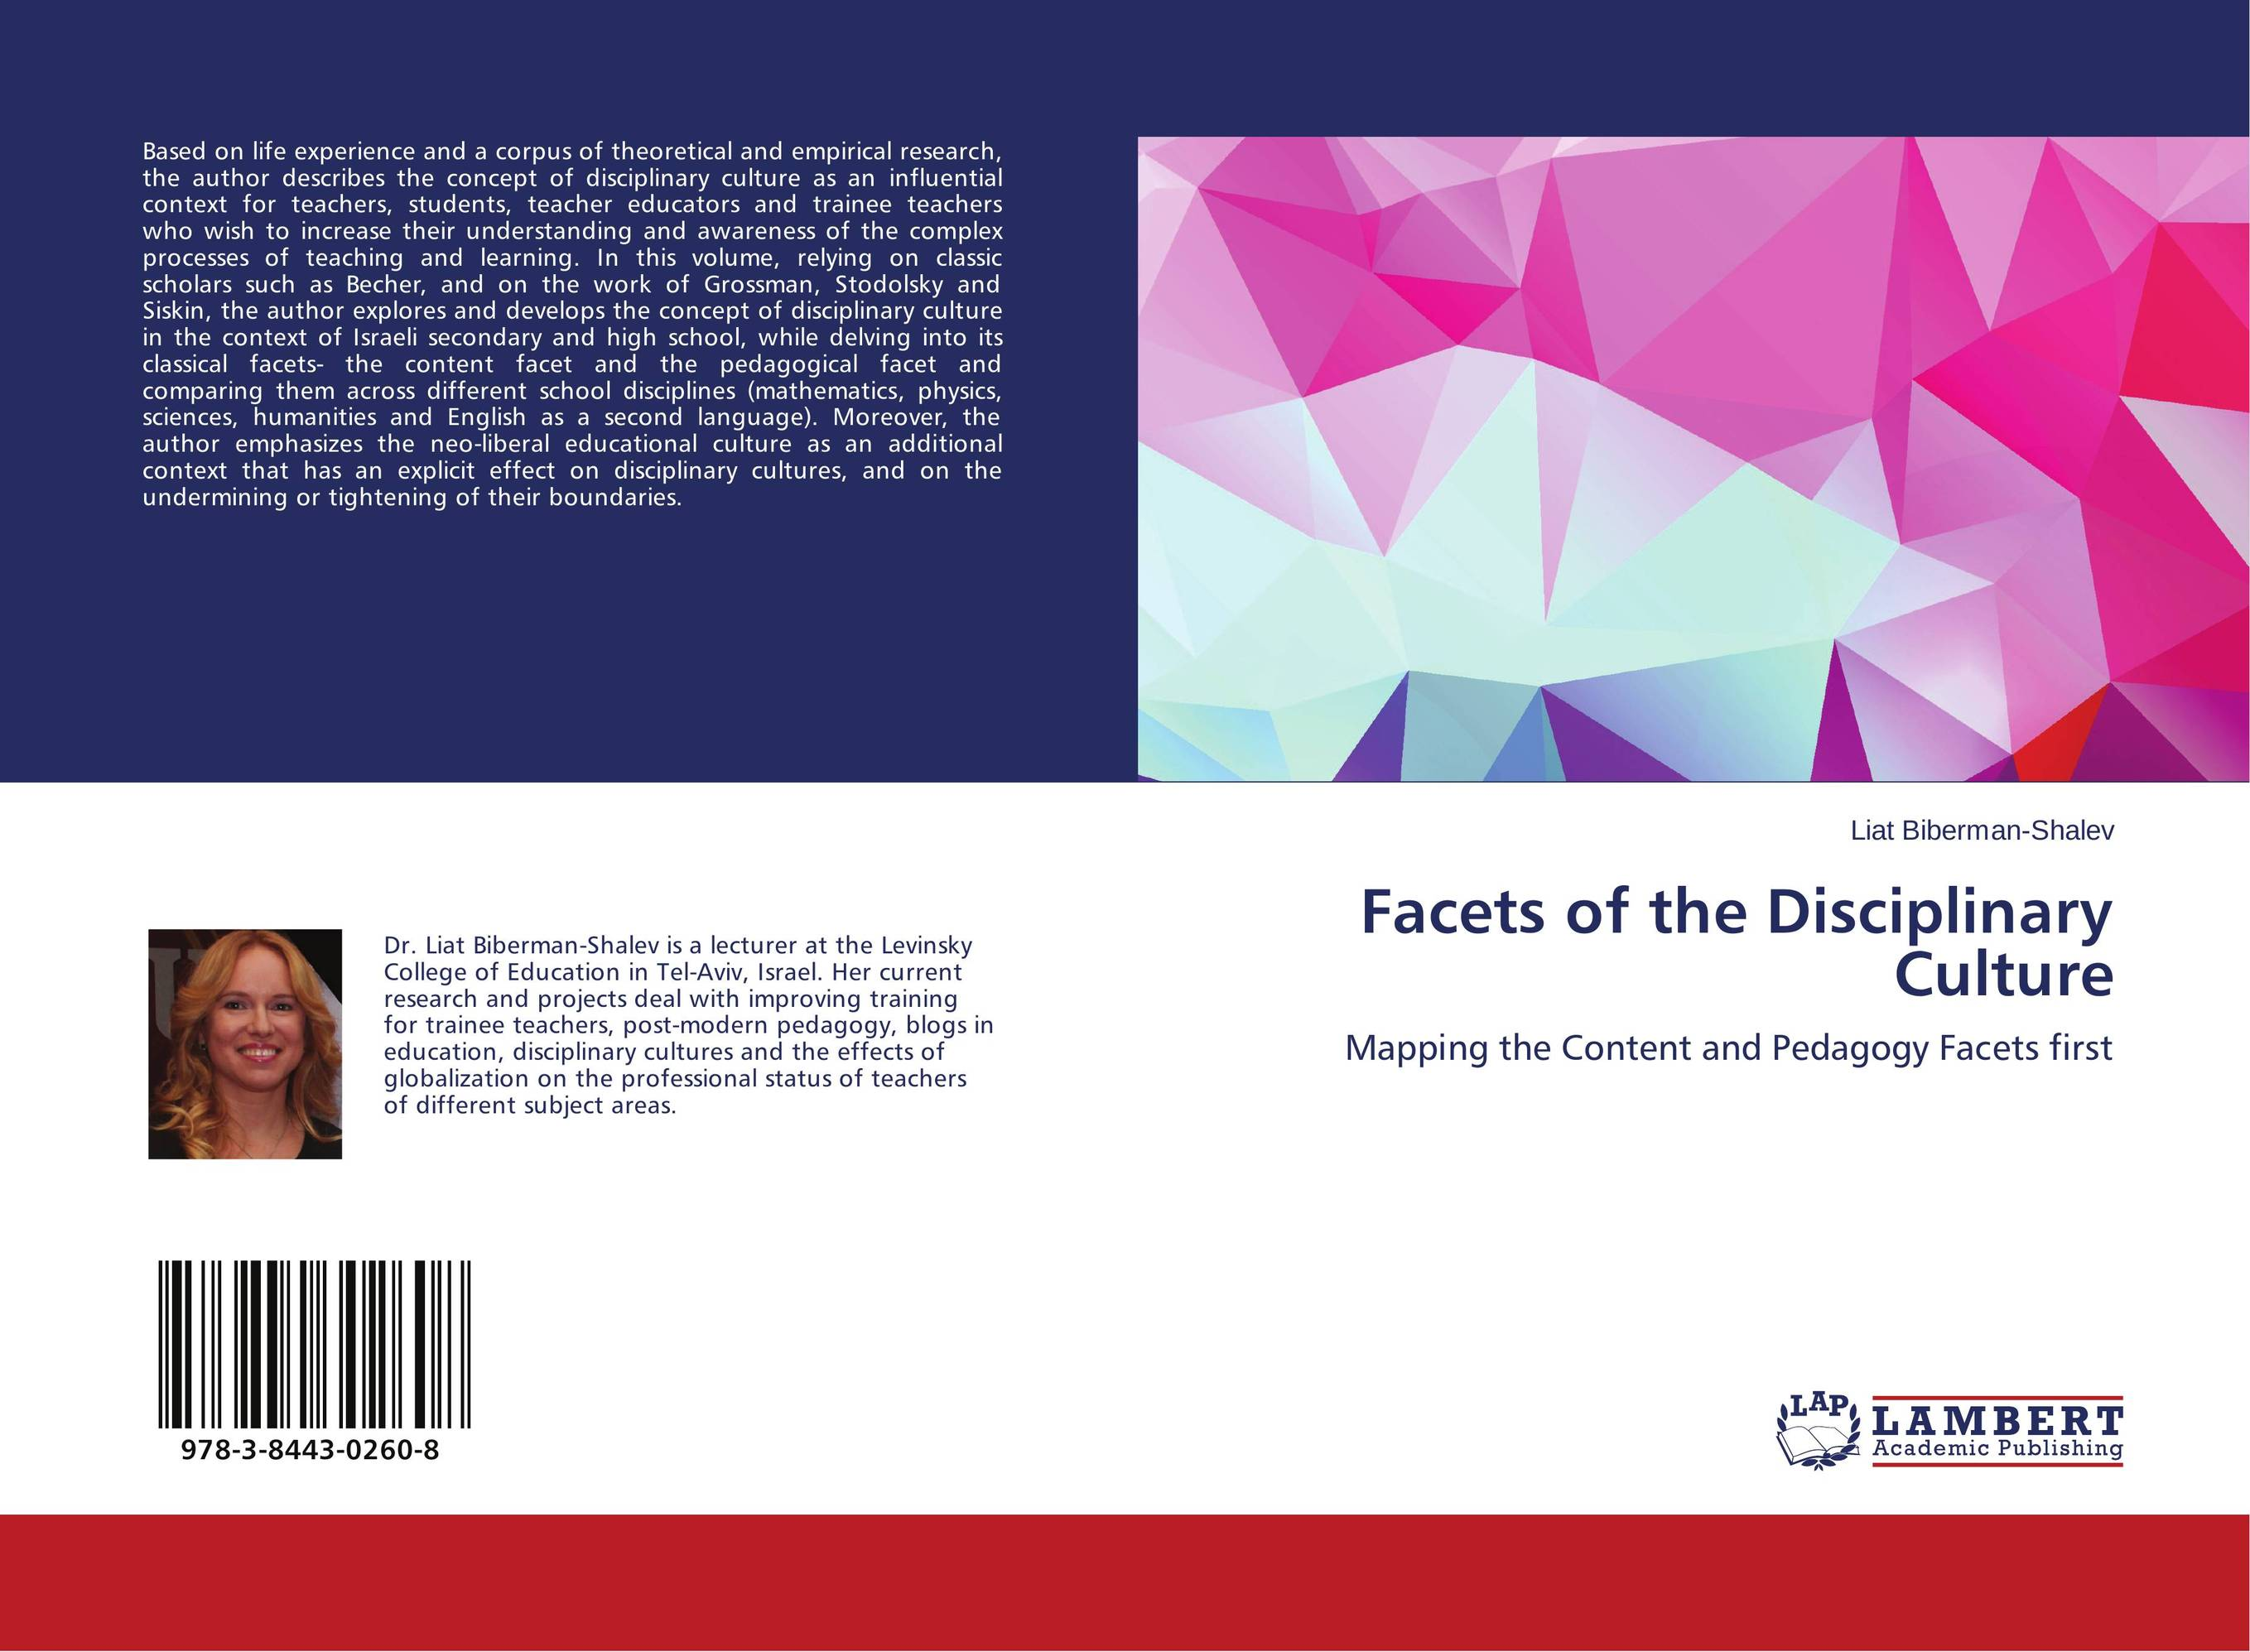 Facets of the Disciplinary Culture